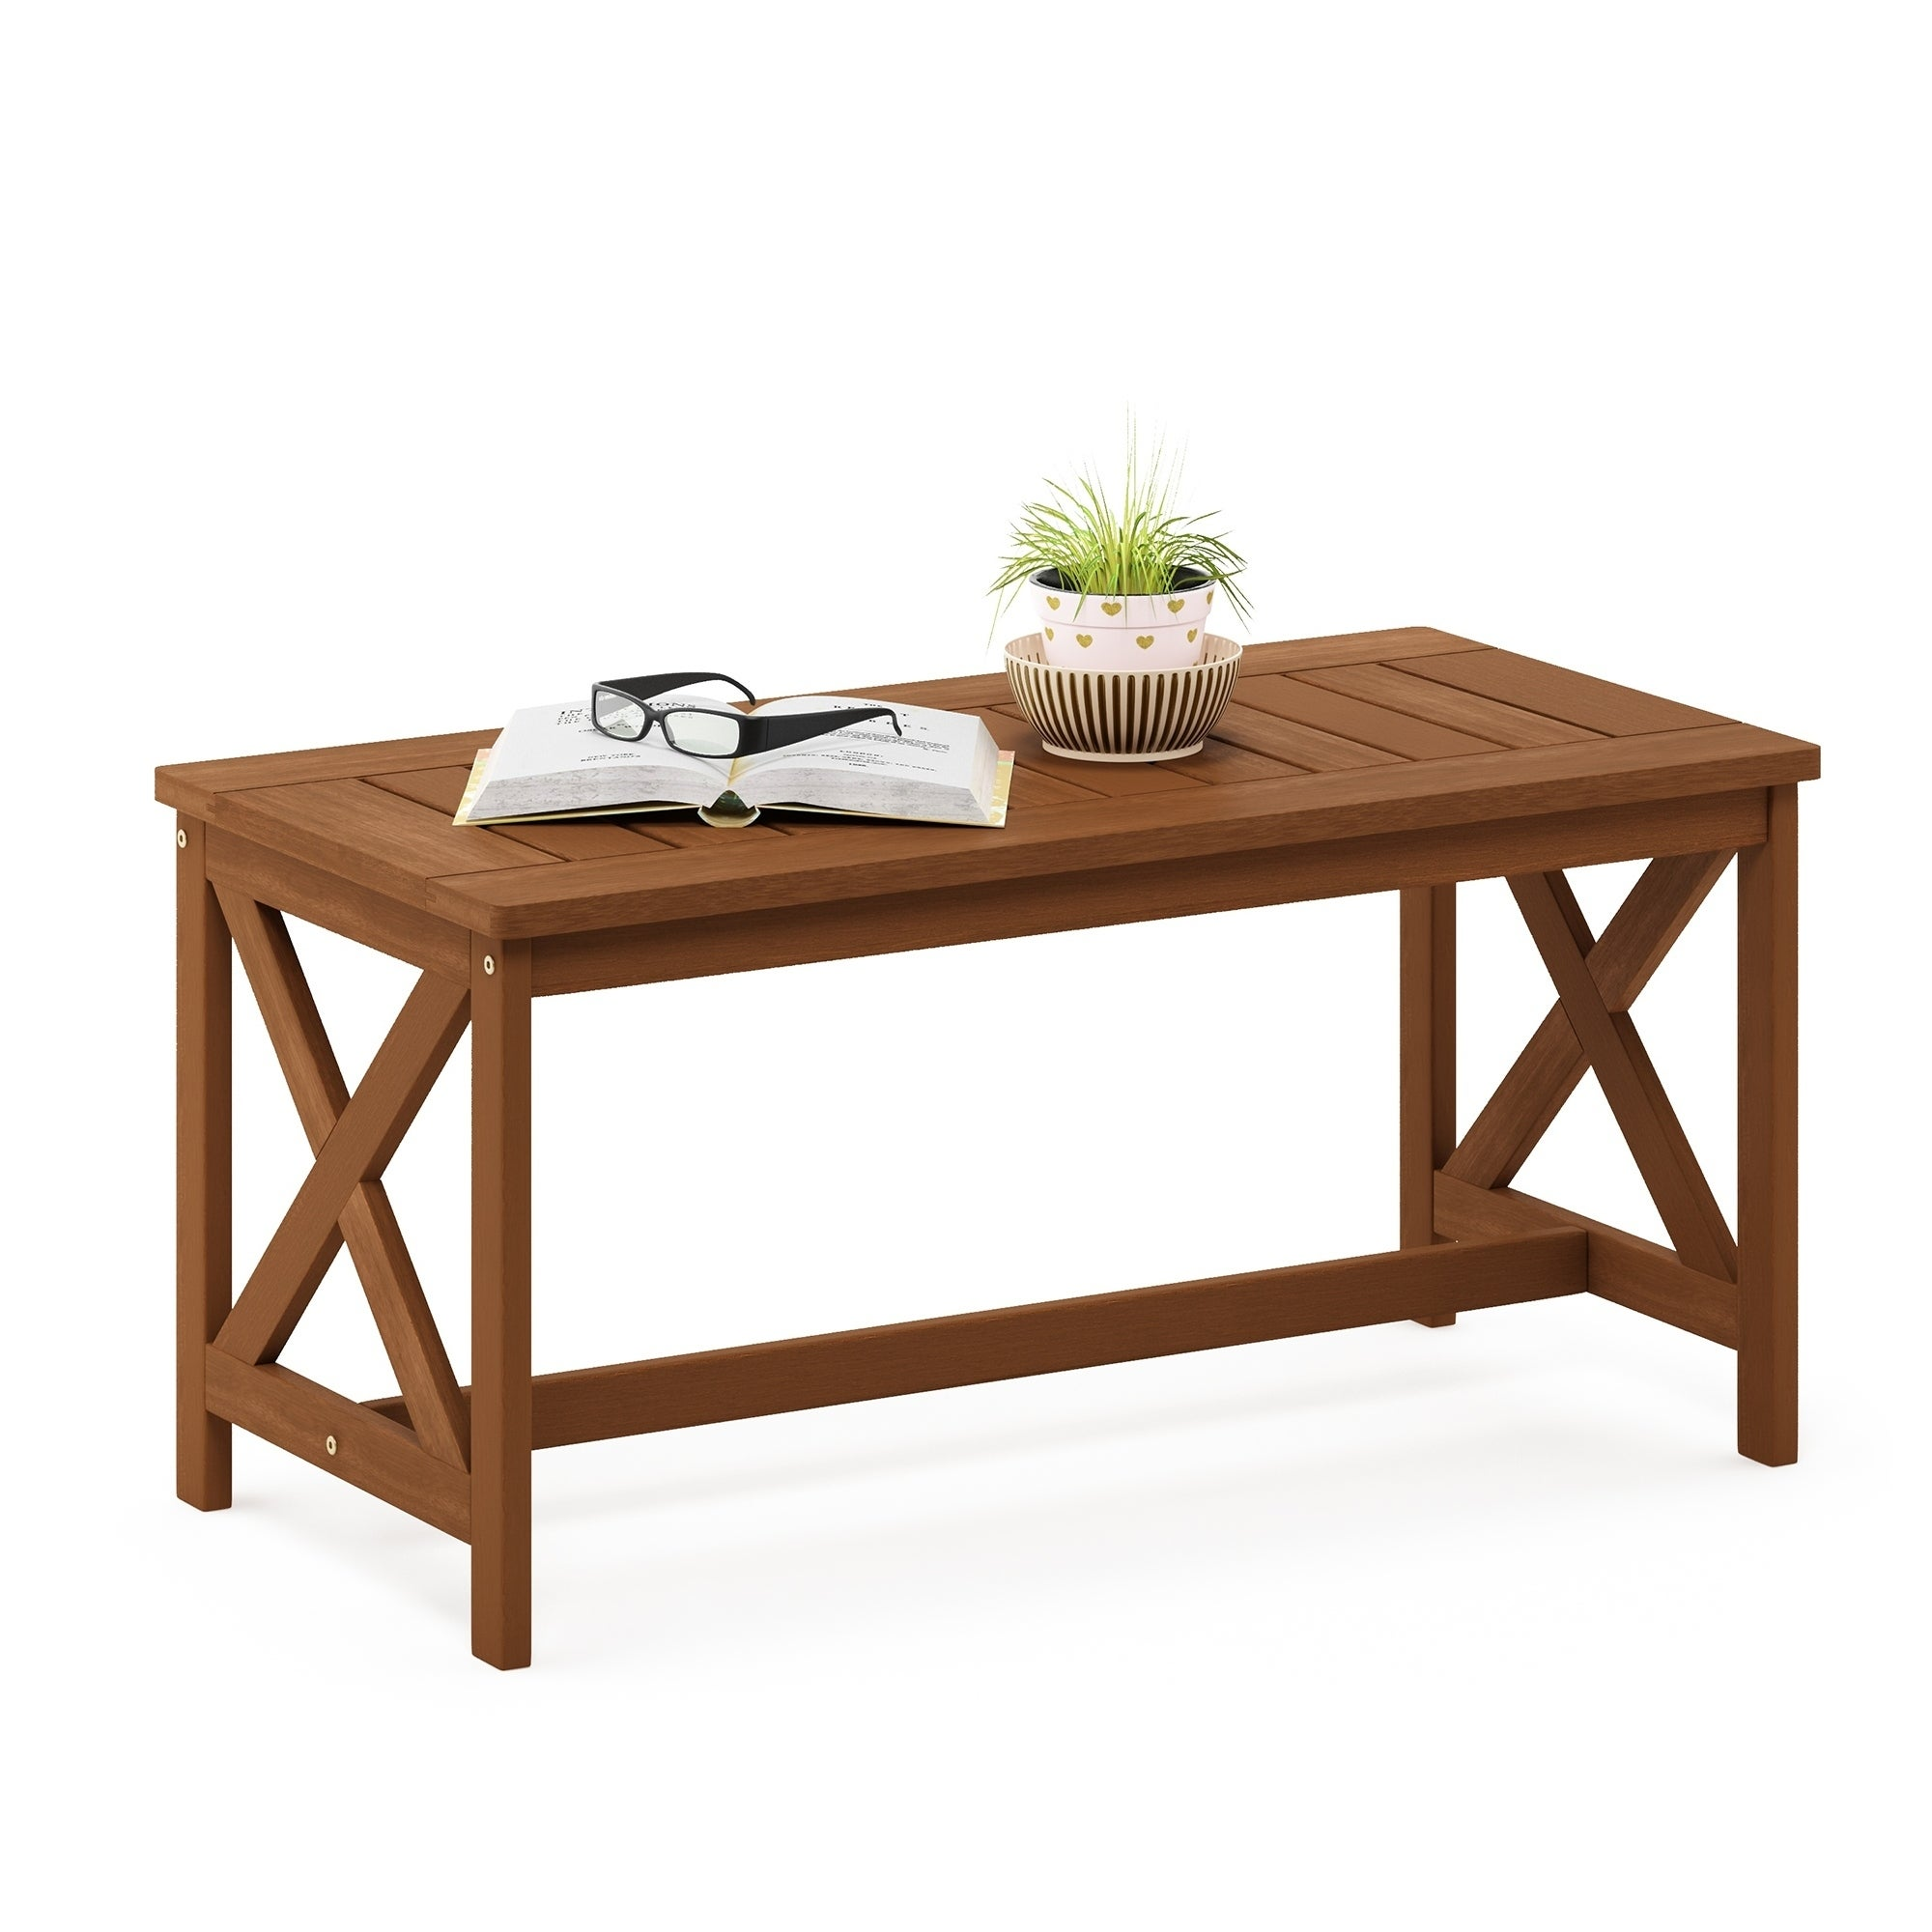 Havenside Home Ormond Hardwood Coffee Table With X Leg In Teak Oil On Free Shipping Today 25518393